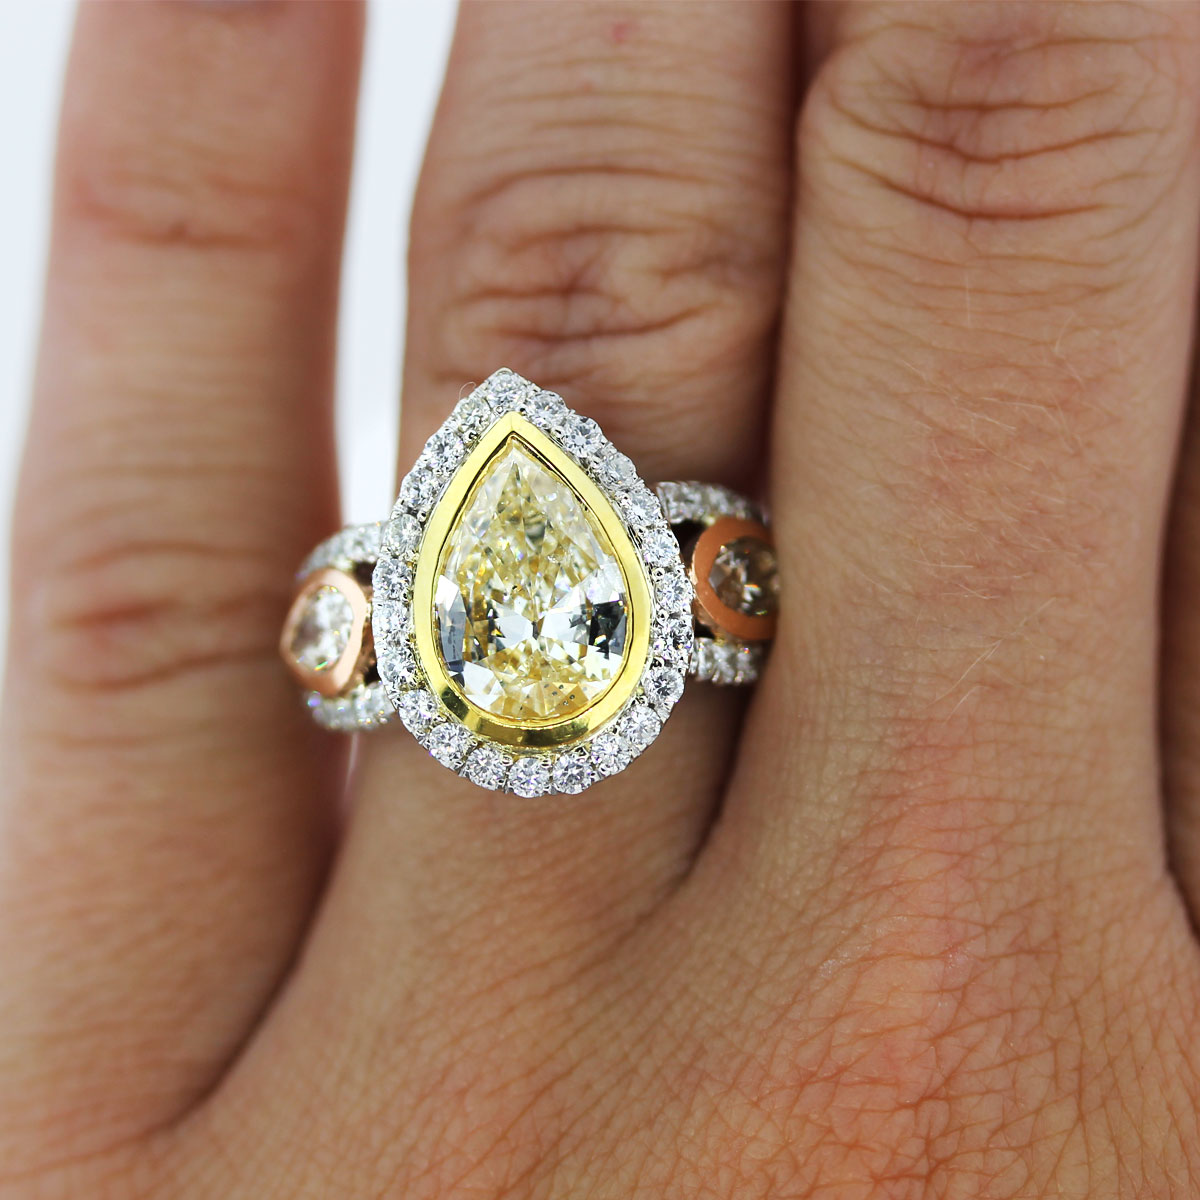 tri tone gold 2 01ct fancy yellow pear shaped diamond engagement ring pear shaped wedding ring Pear Shaped Yellow Diamond Engagement ring